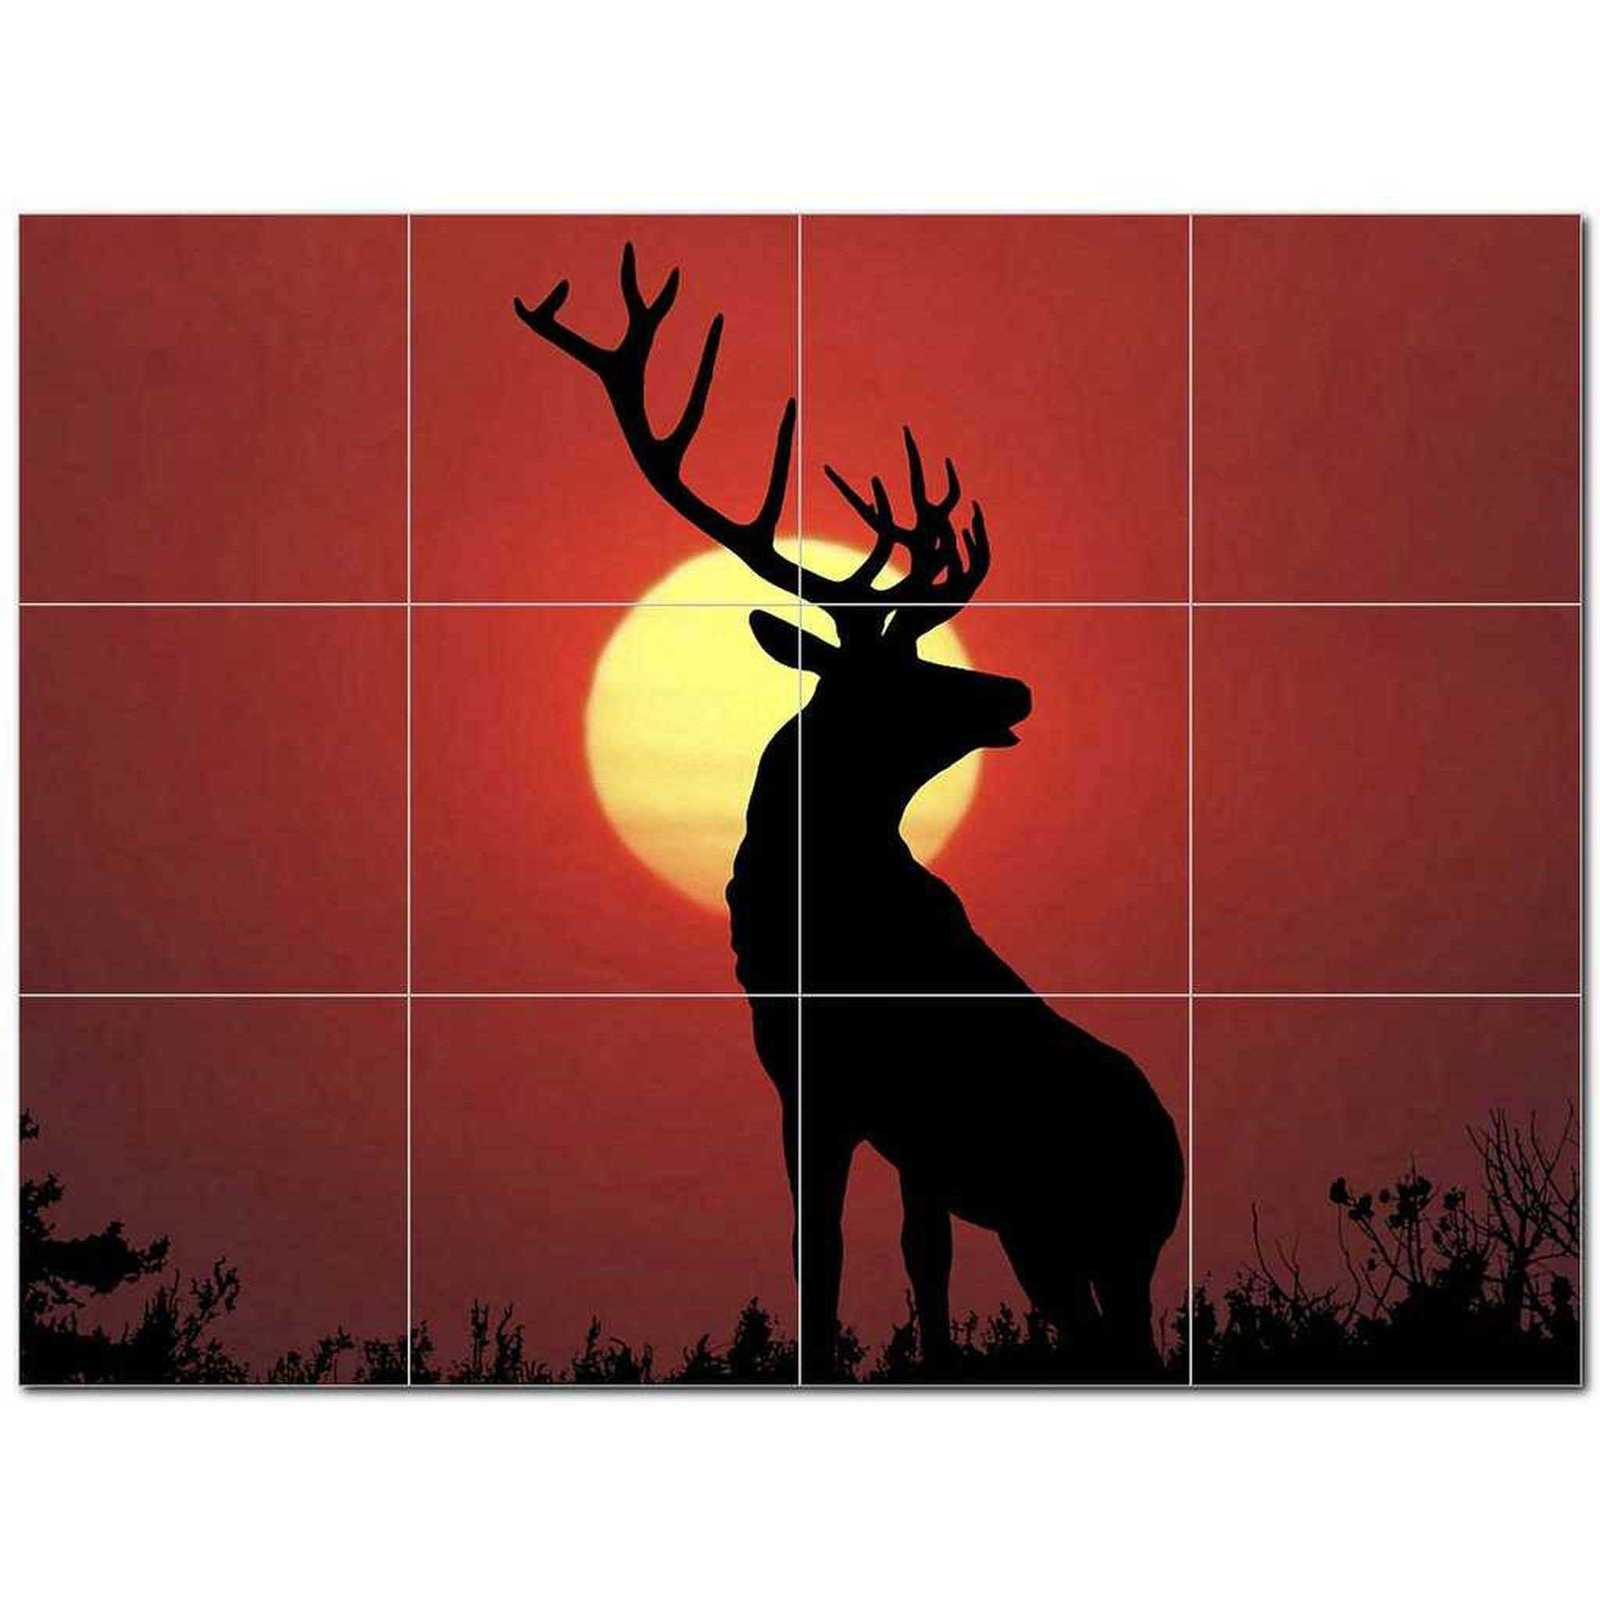 Primary image for Sunset Photo Ceramic Tile Mural Kitchen Backsplash Bathroom Shower BAZ405884